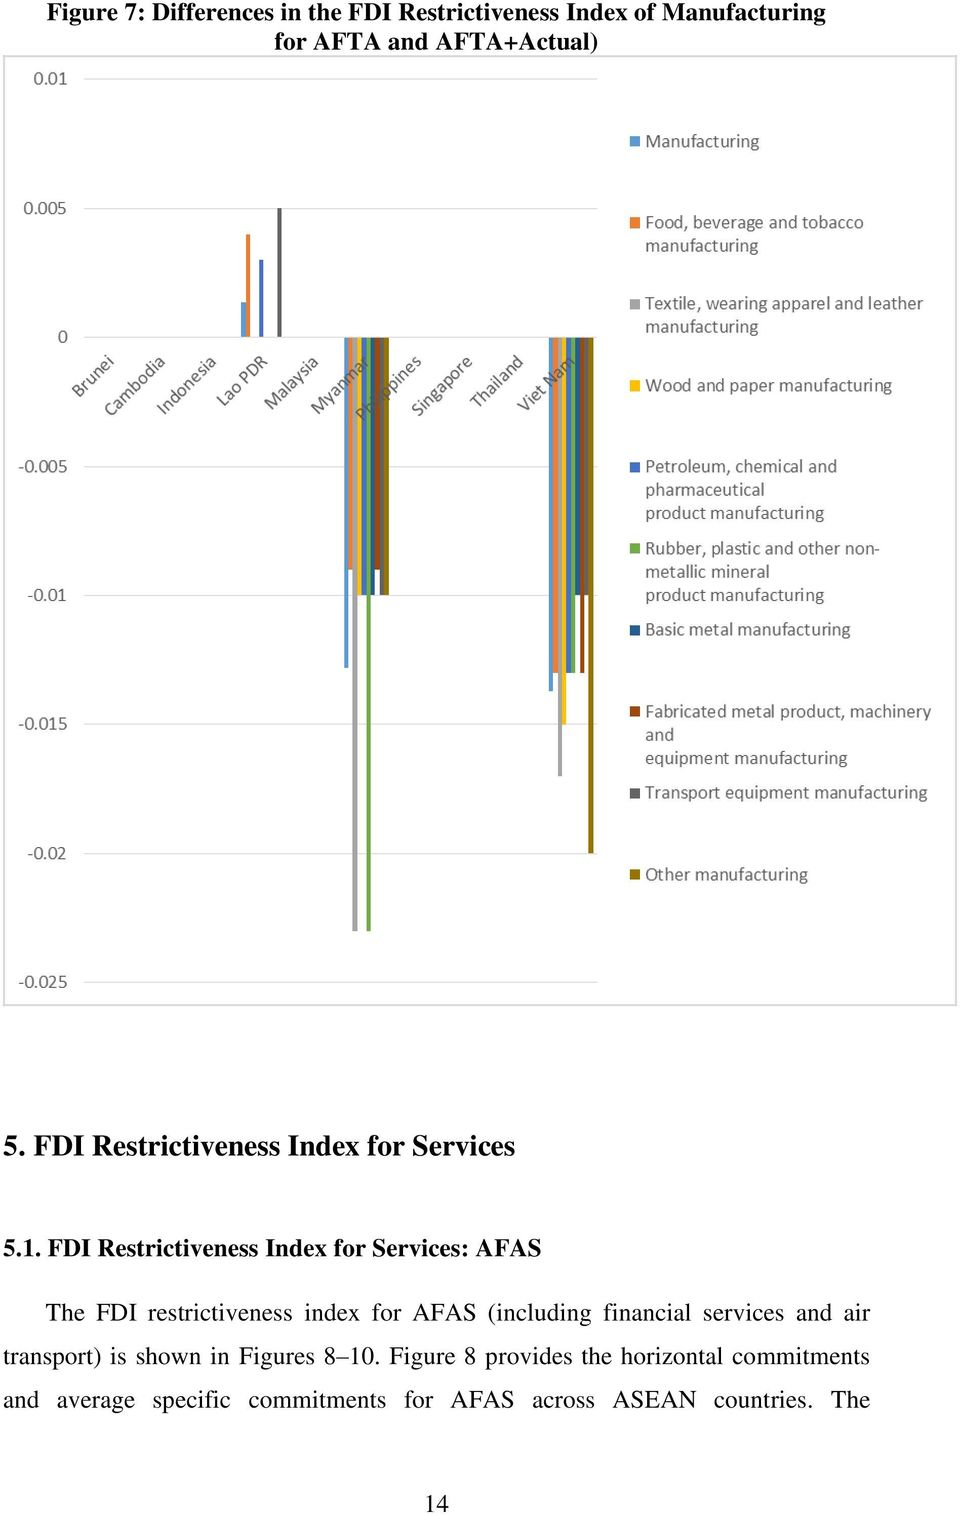 FDI Restrictiveness Index for Services: AFAS The FDI restrictiveness index for AFAS (including financial